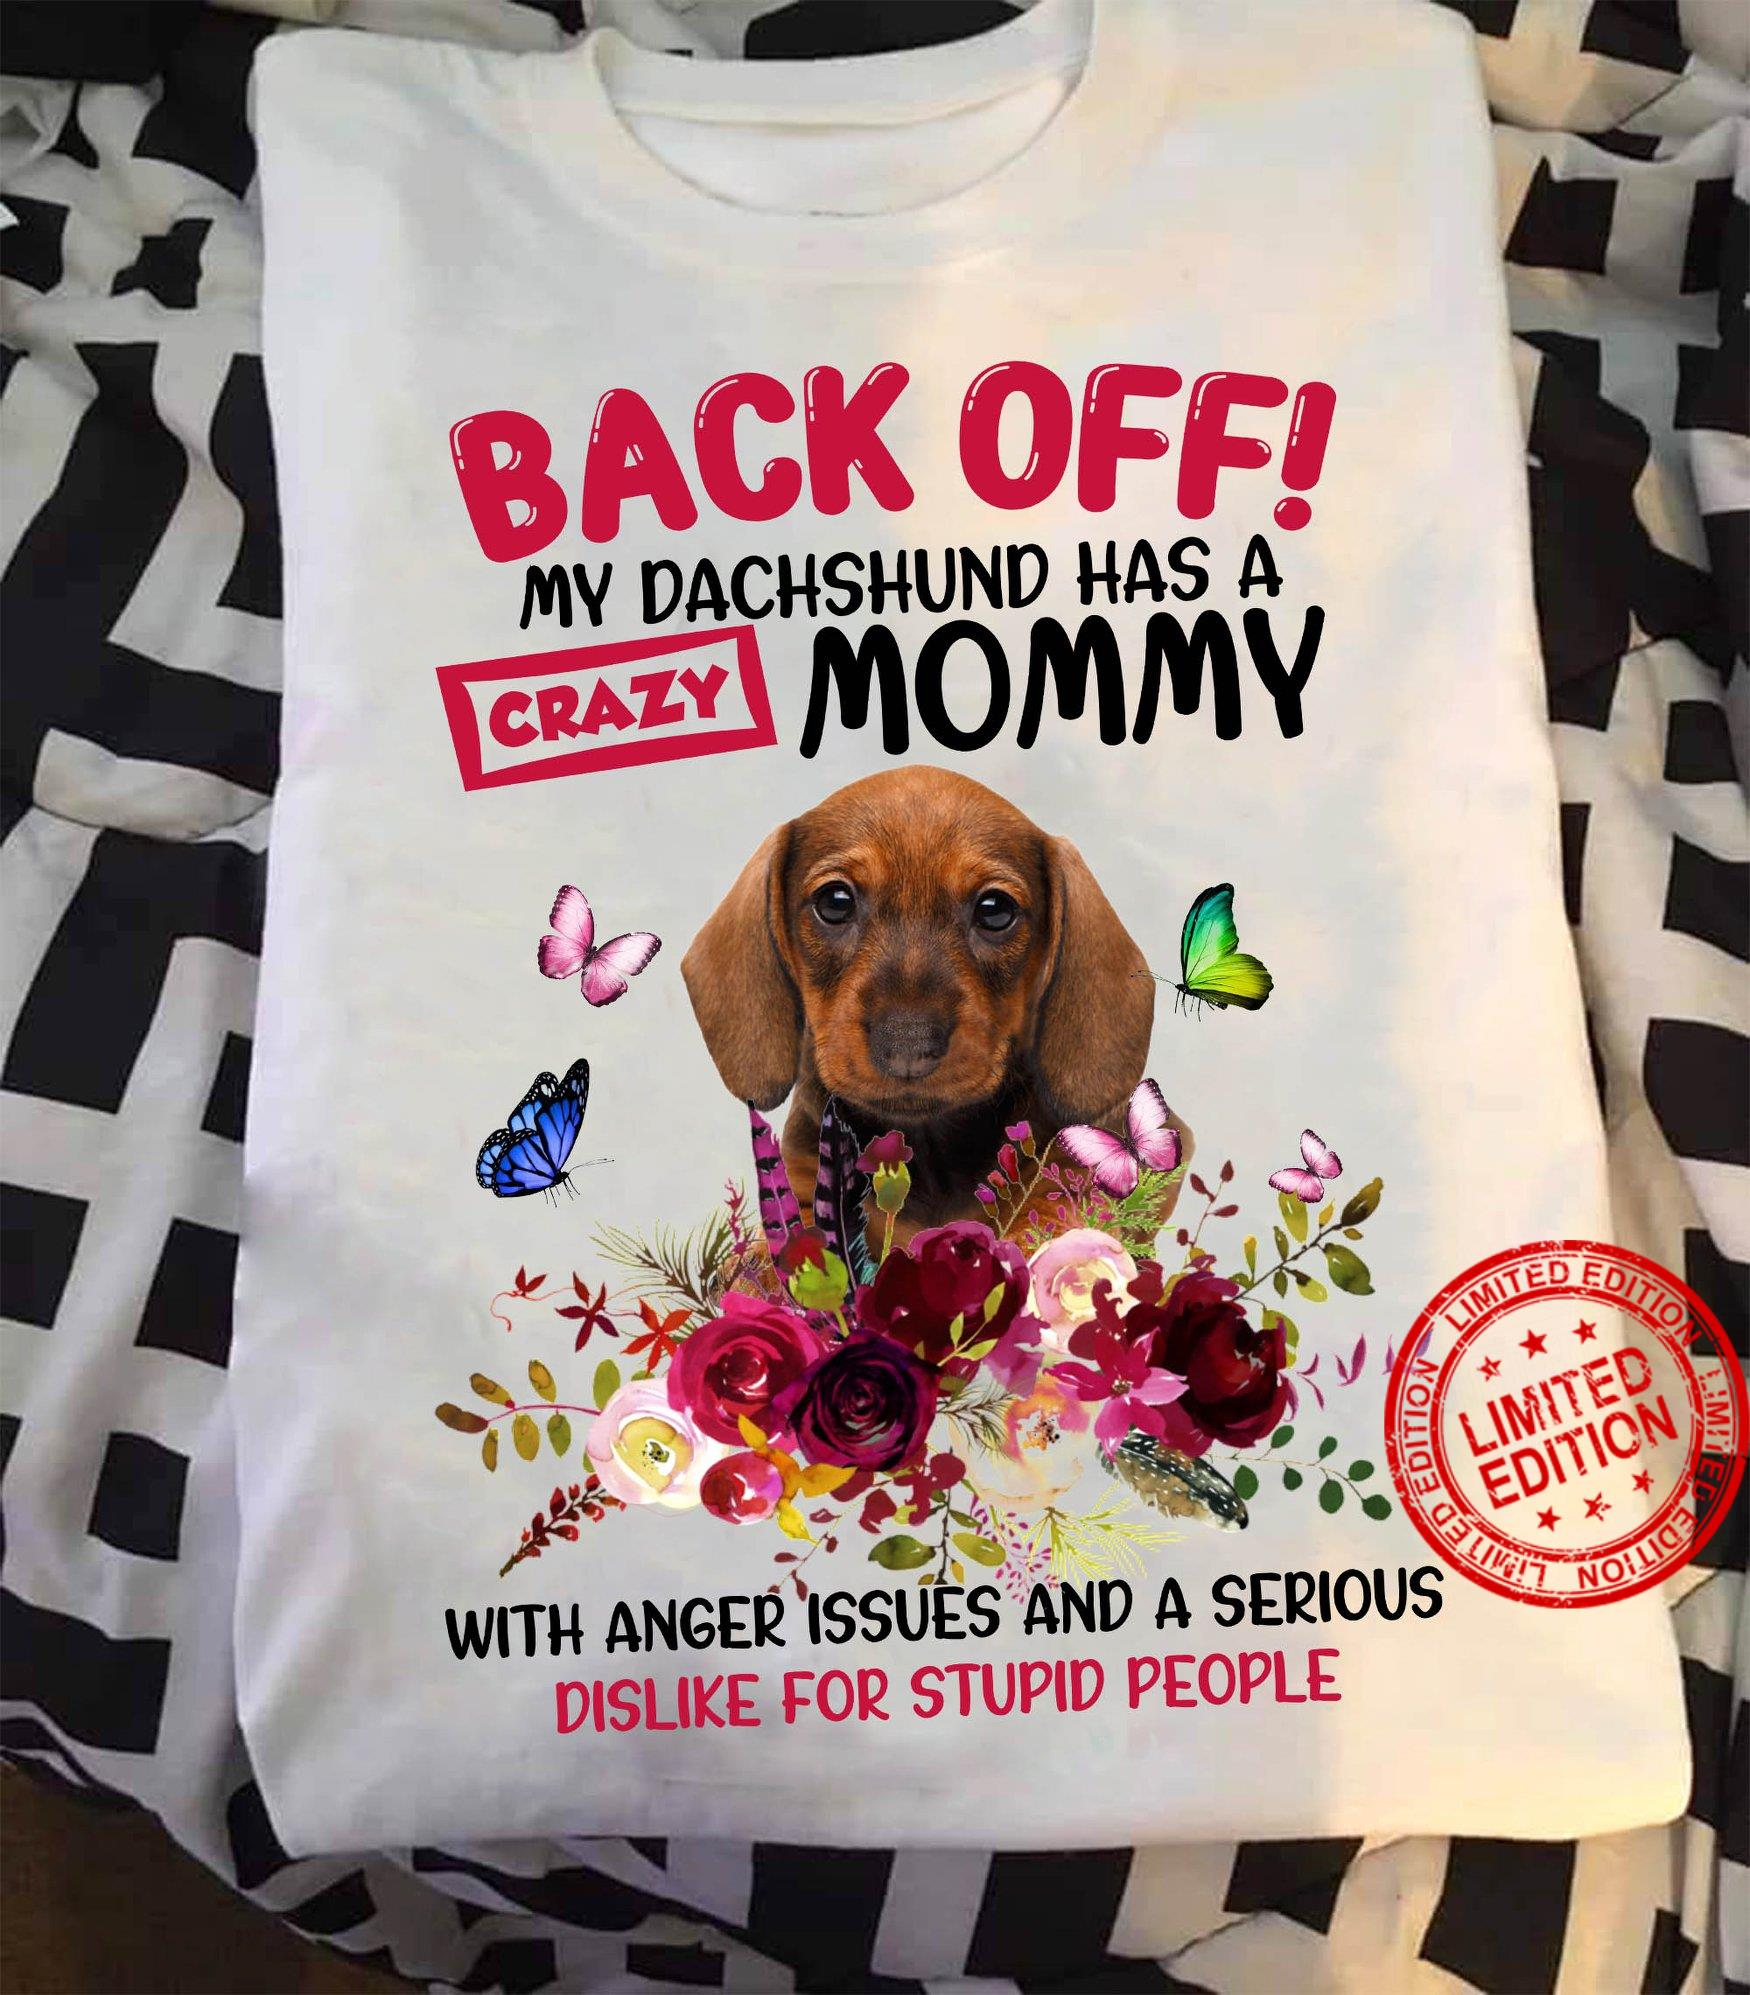 Back Off My Dachshund Has A Crazy Mommy With Anger Issues And A Serious Dislike For Stupid People Shirt